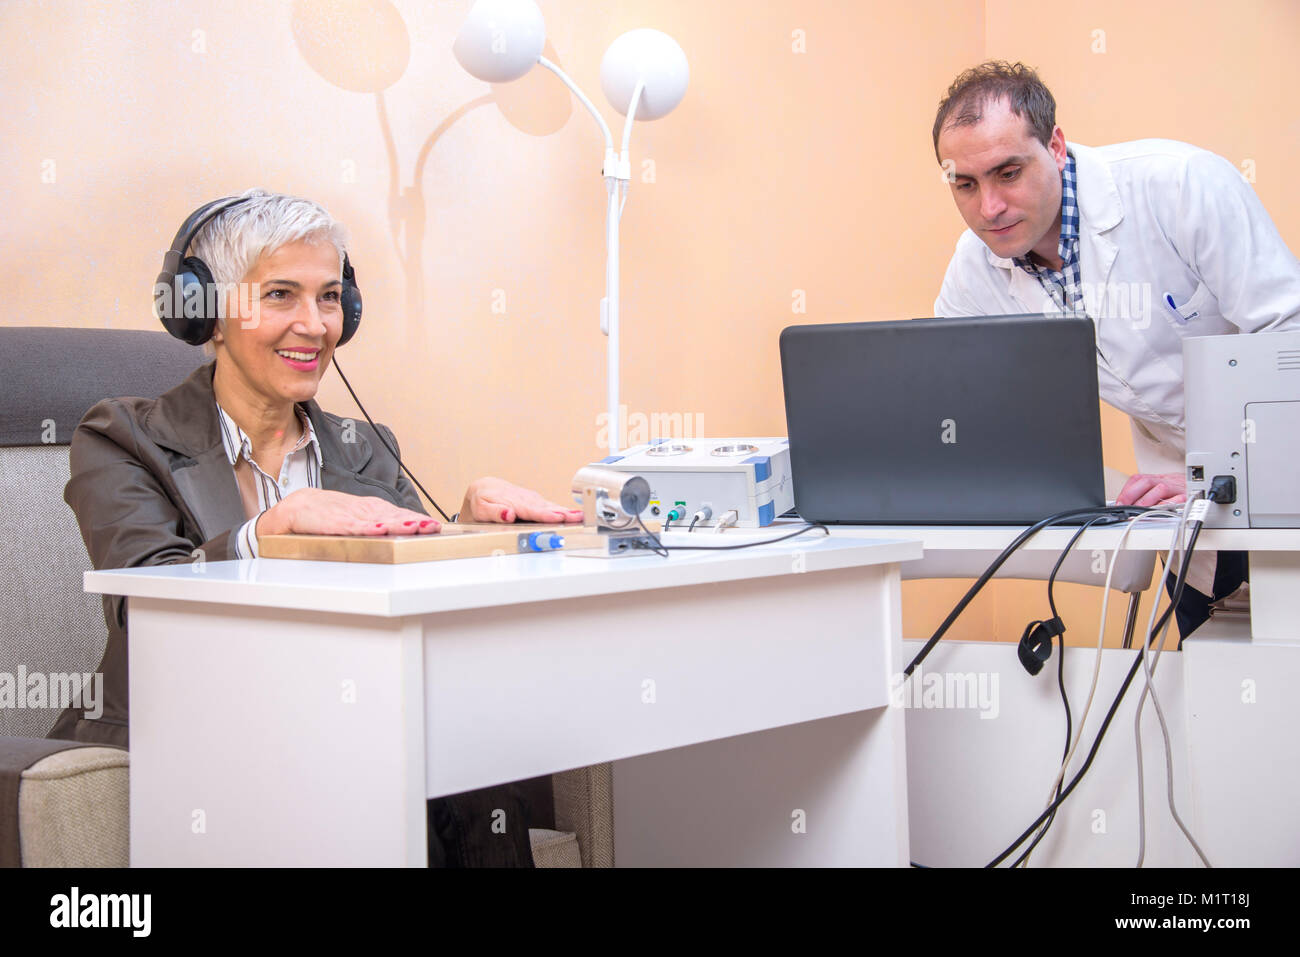 Older woman using alternative medicine - Stock Image